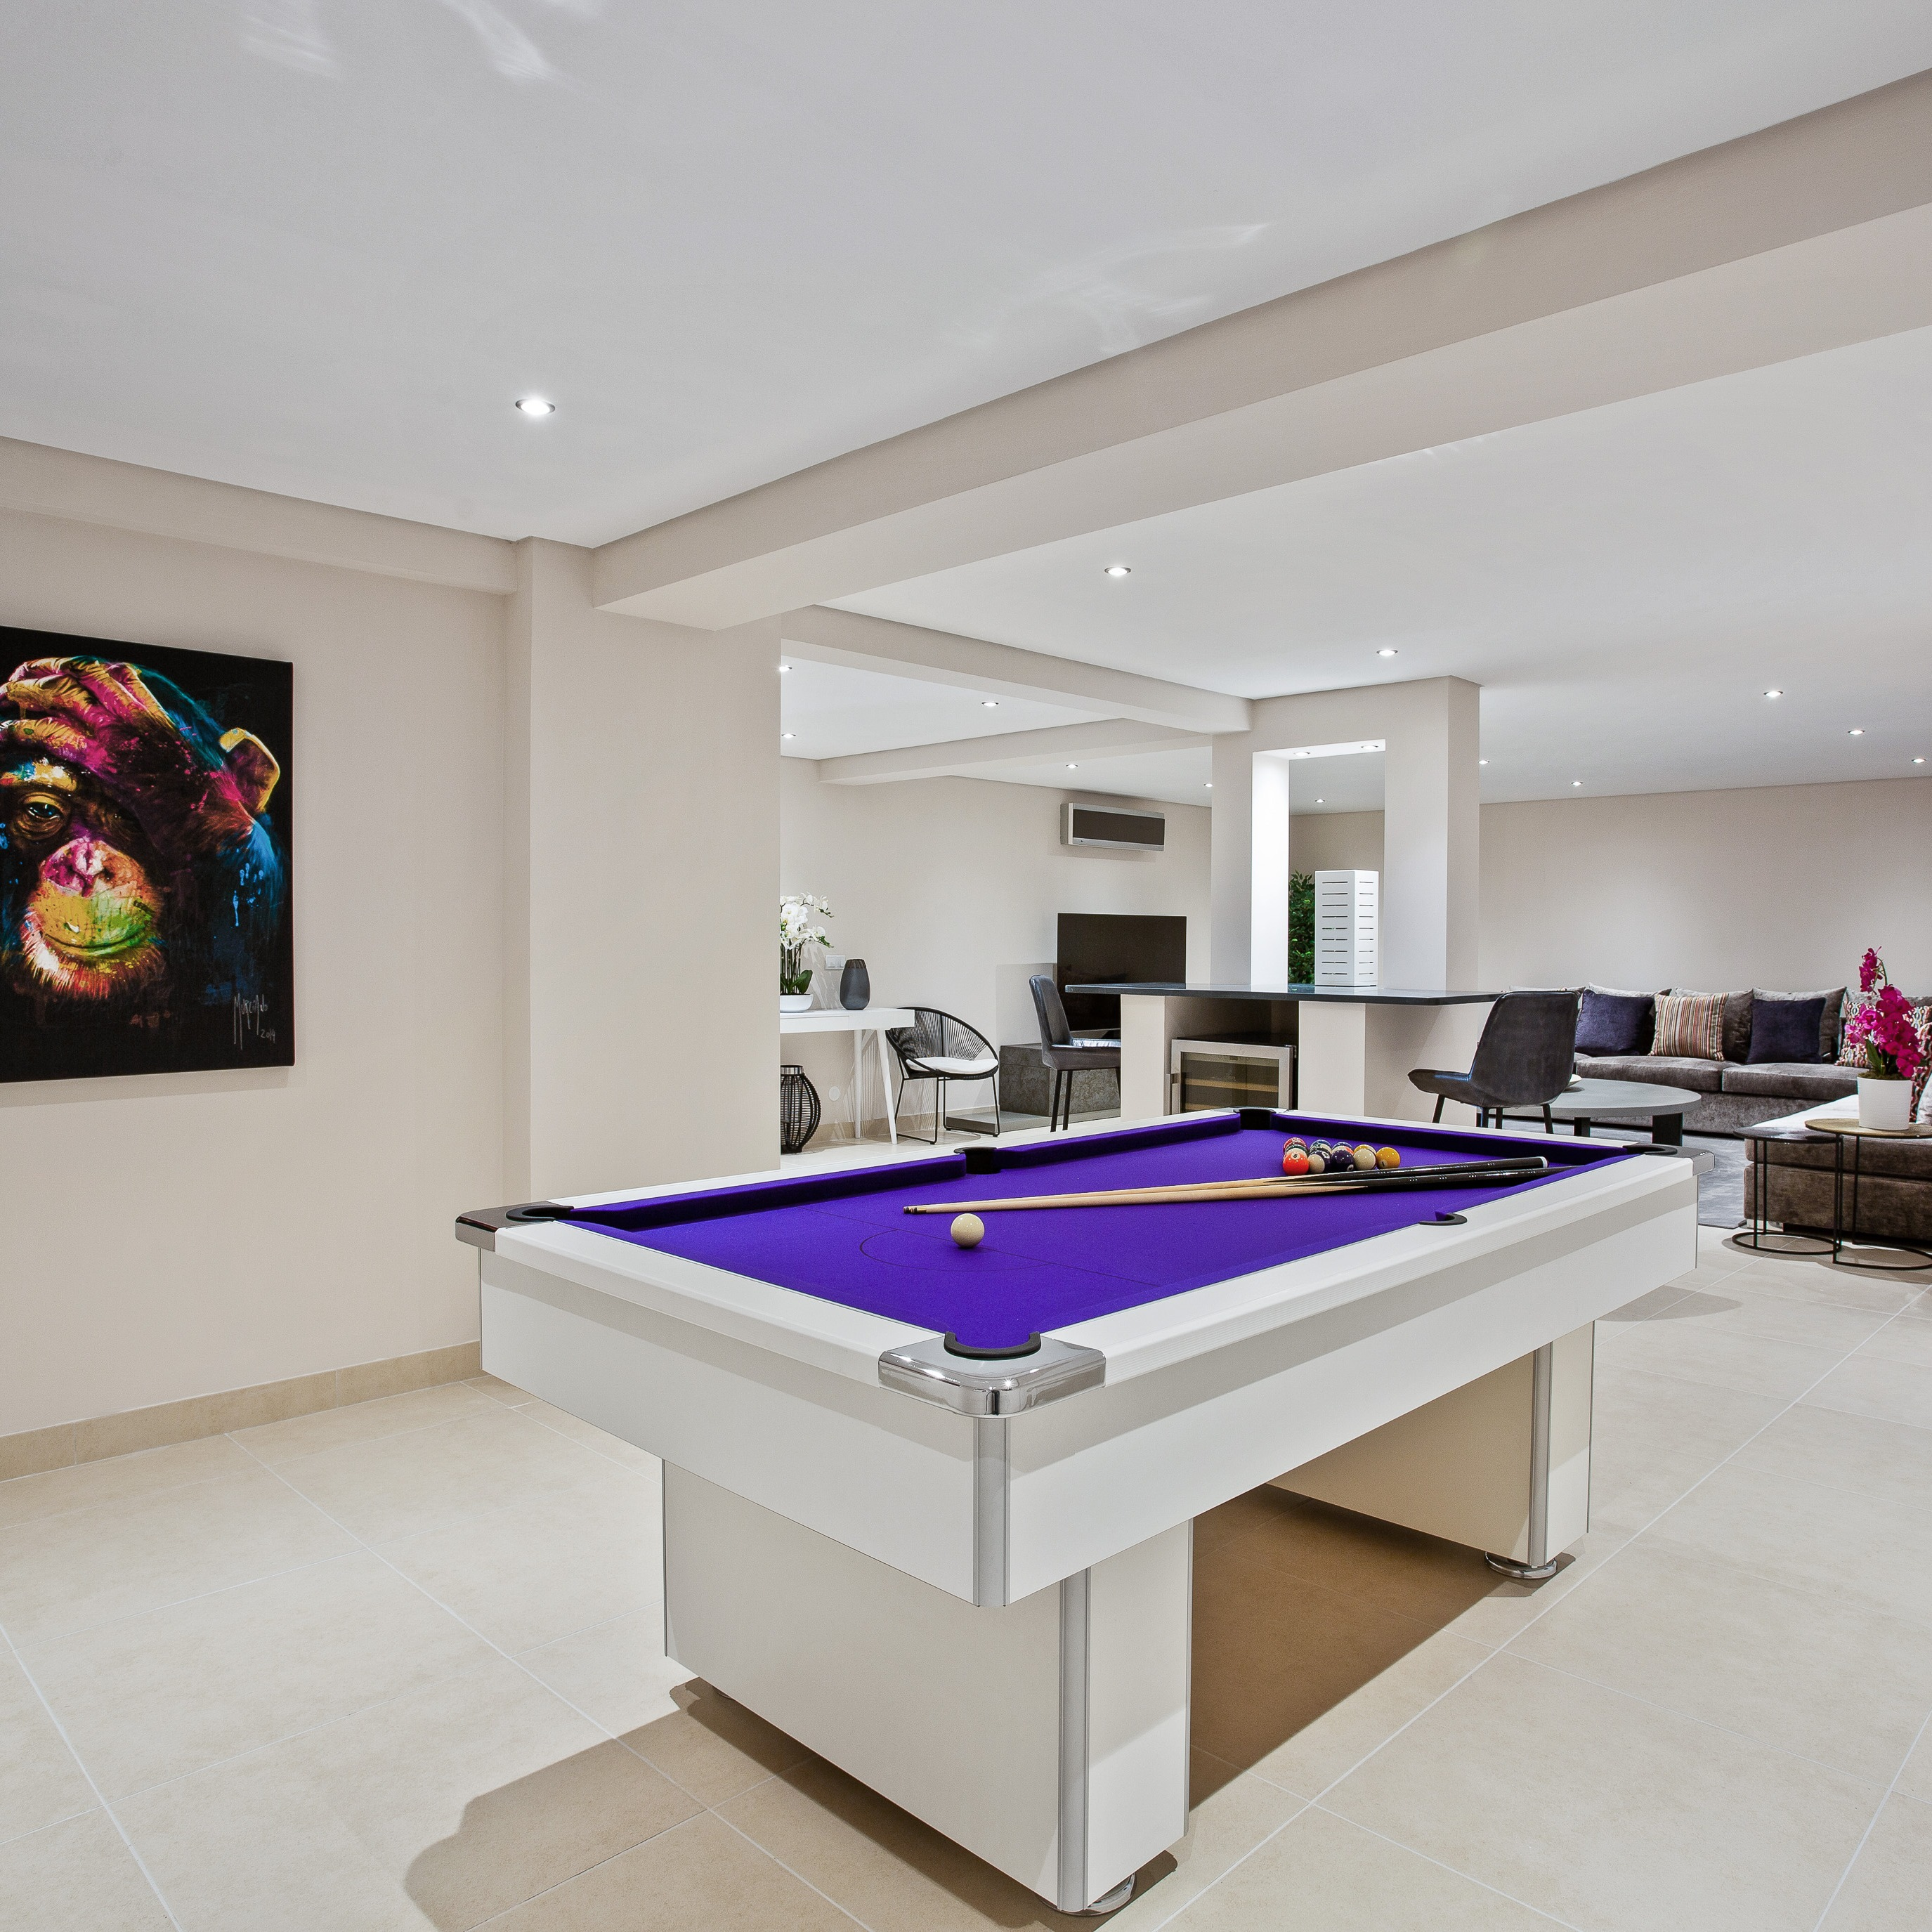 NZ Games Room Company Ltd - mypooltable.co.nz